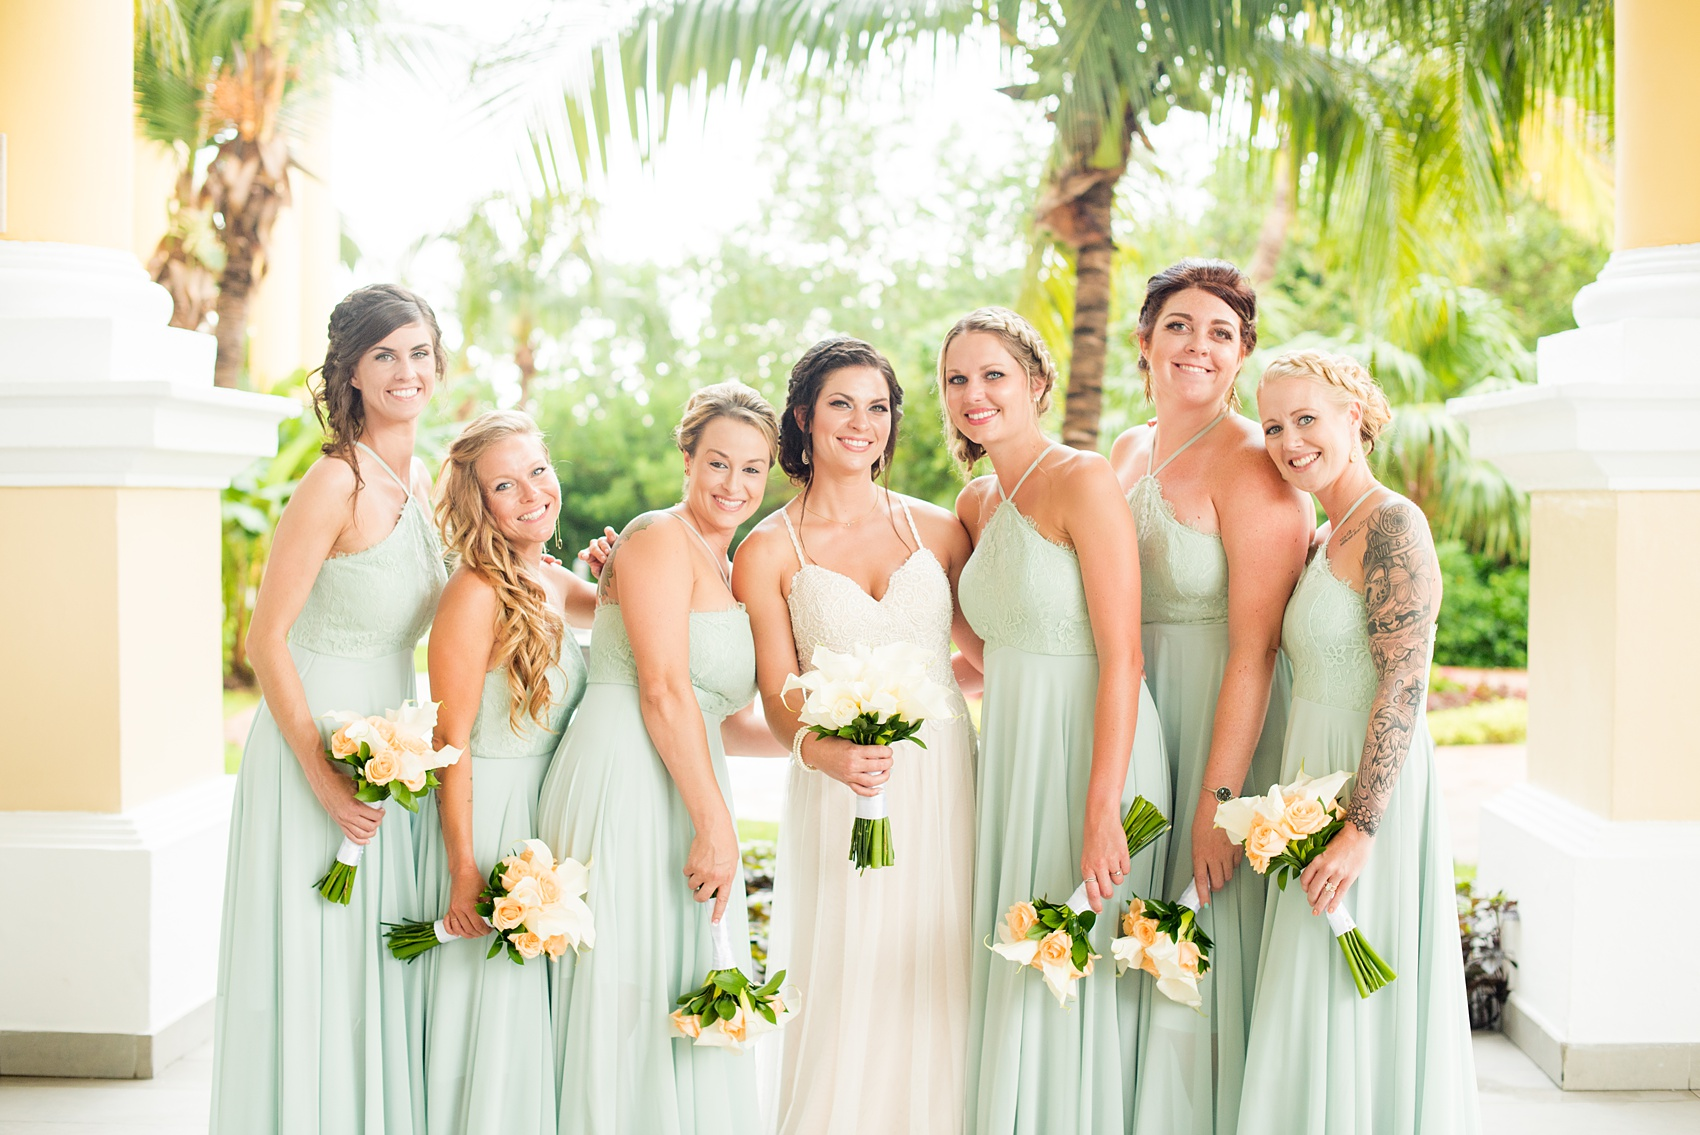 Mikkel Paige Photography photos from a wedding at Grand Paraiso, Mexico, Playa del Carmen Iberostar resort. Picture of the bride and her bridesmaids. The bridesmaids wore mint green gowns.